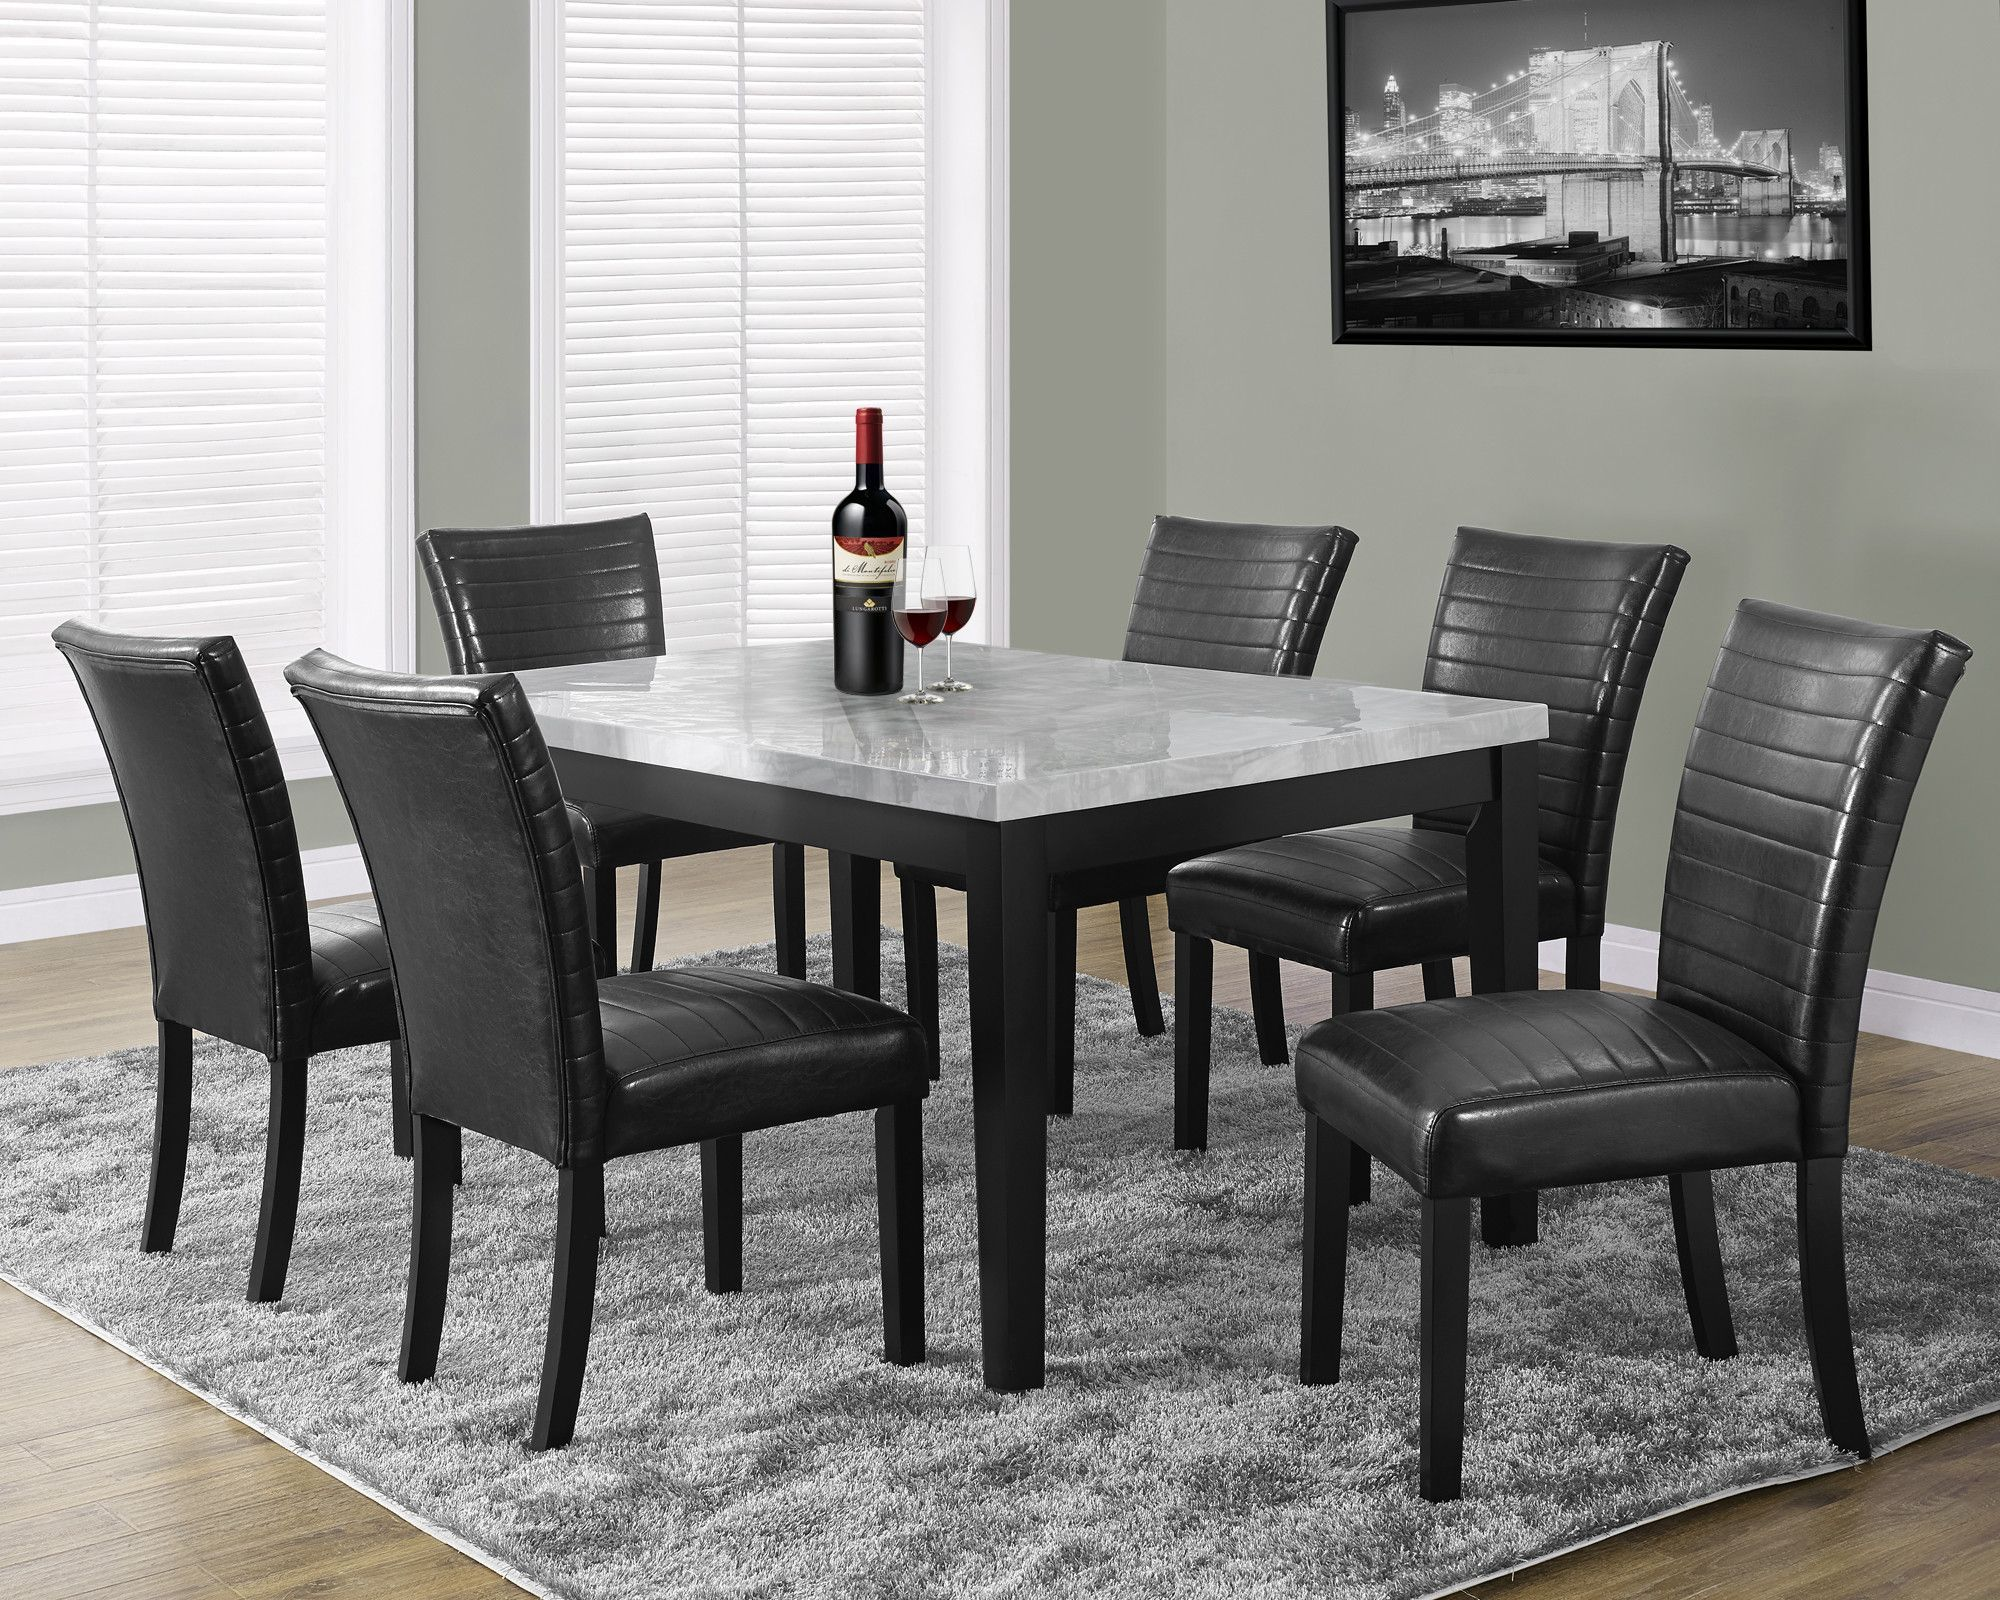 Isabella Dining Table | Products | Pinterest